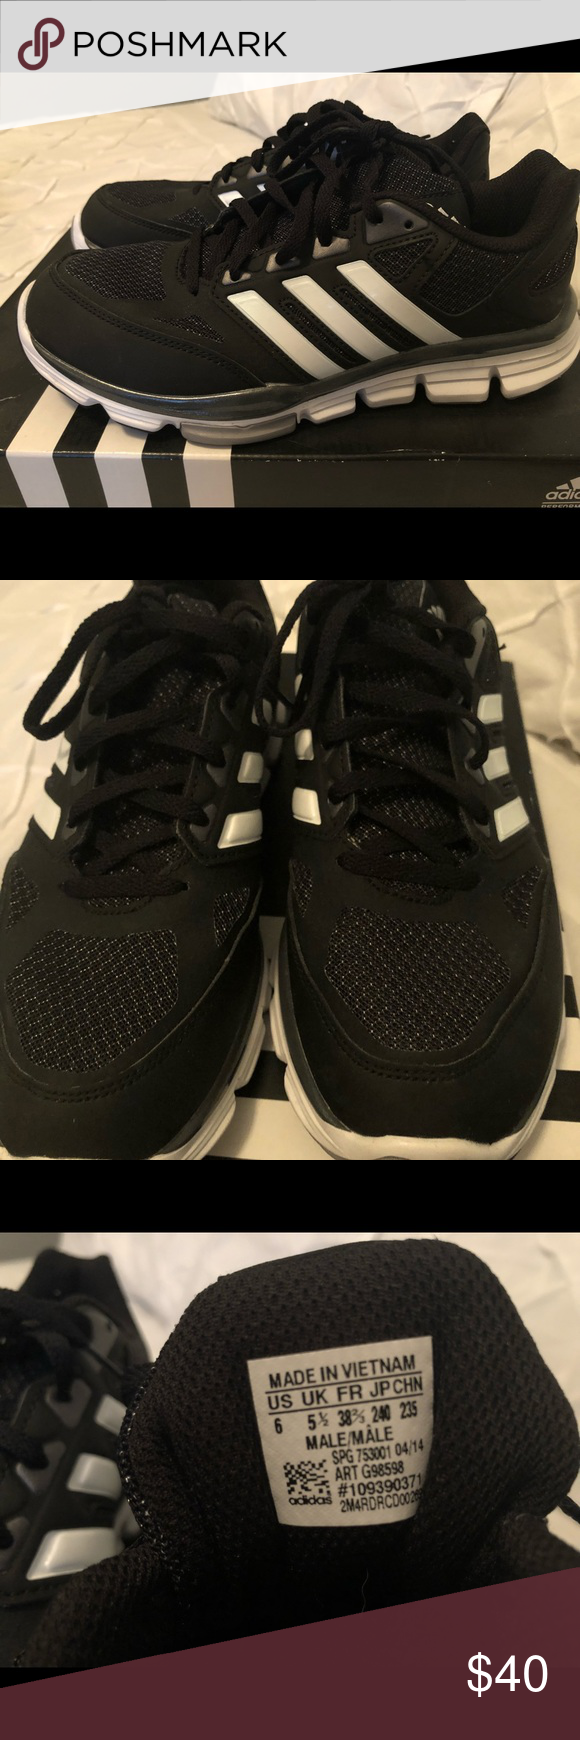 d4bb511b9216 Adidas Speed trainer sneakers Brand new